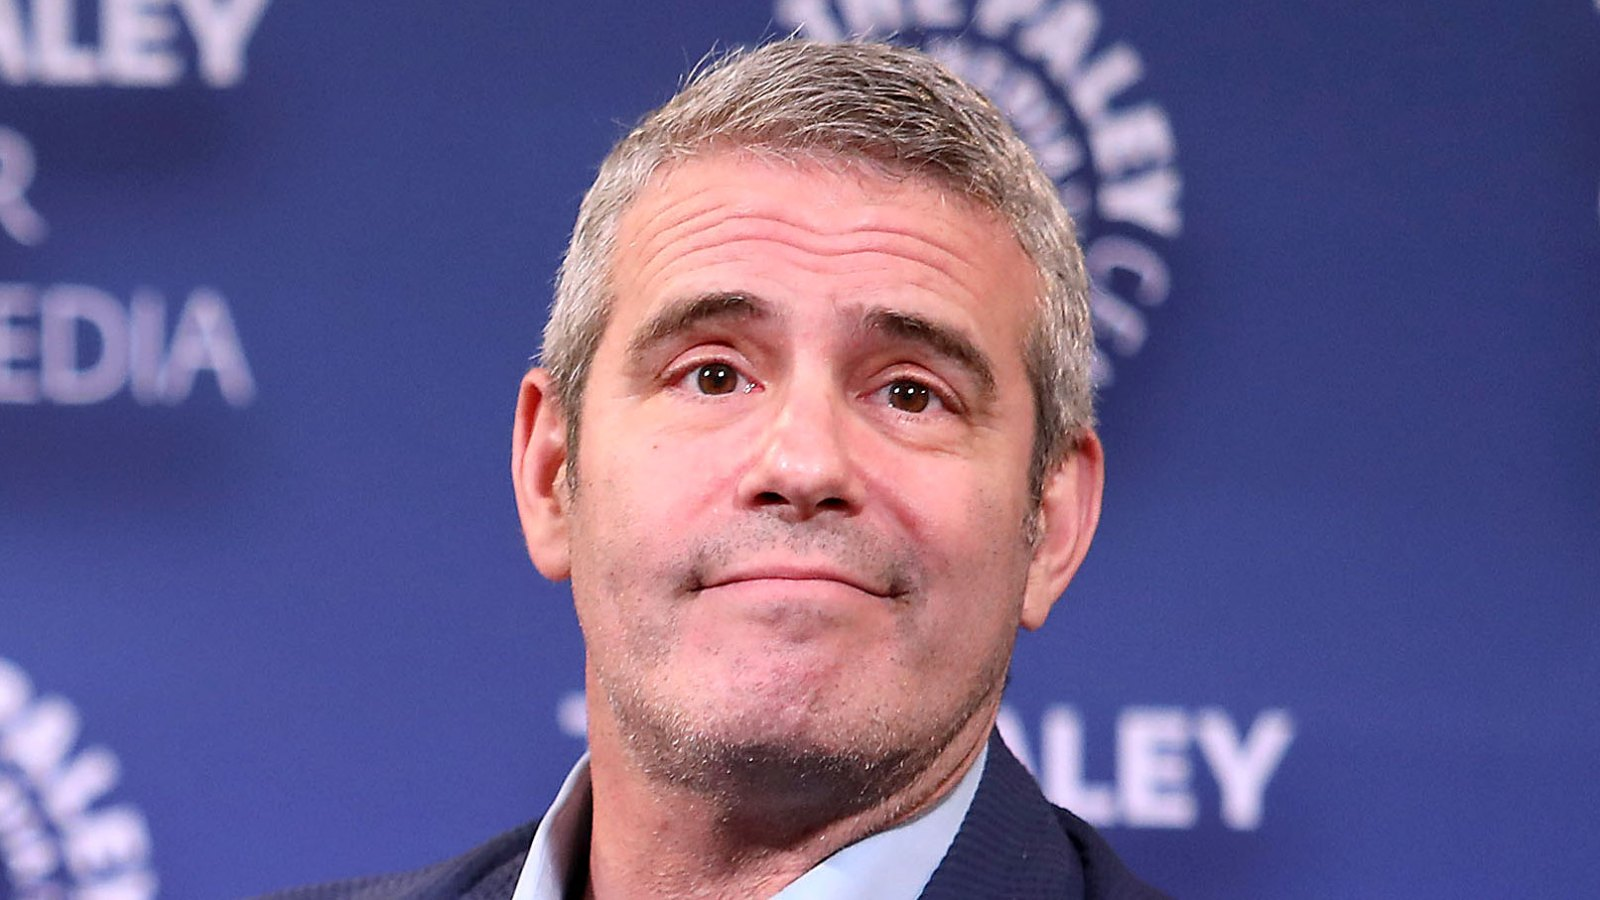 Andy Cohen Confirms That The RHOA Reunion Is Postponed Due To The Coronavirus Outbreak